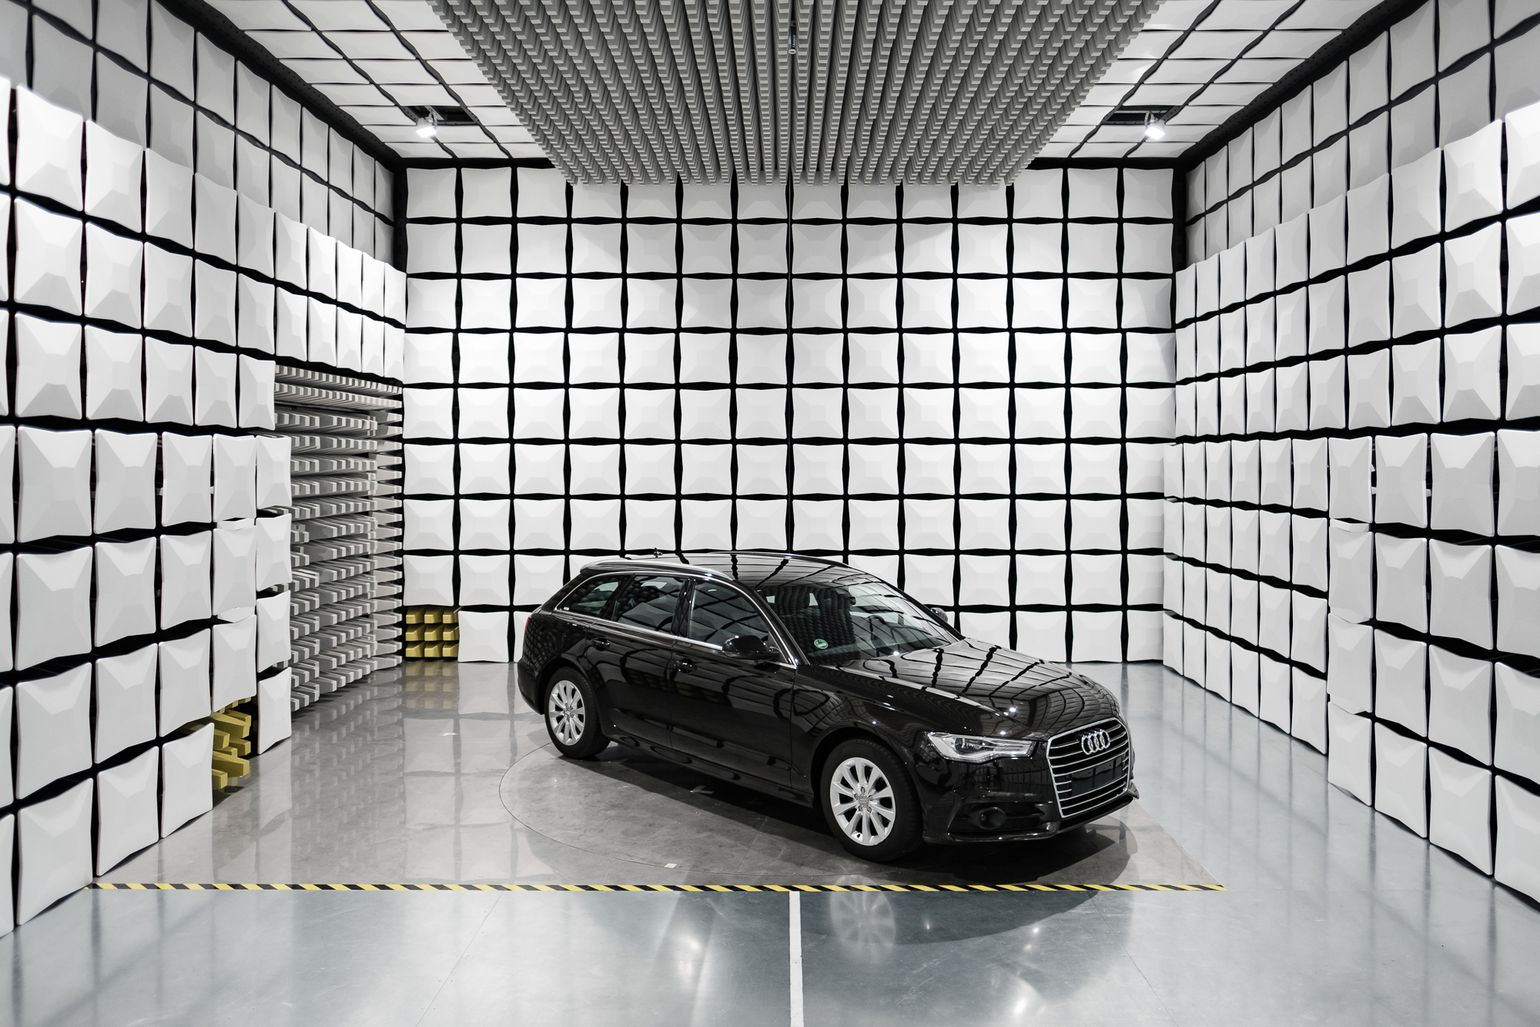 audi in test chamber